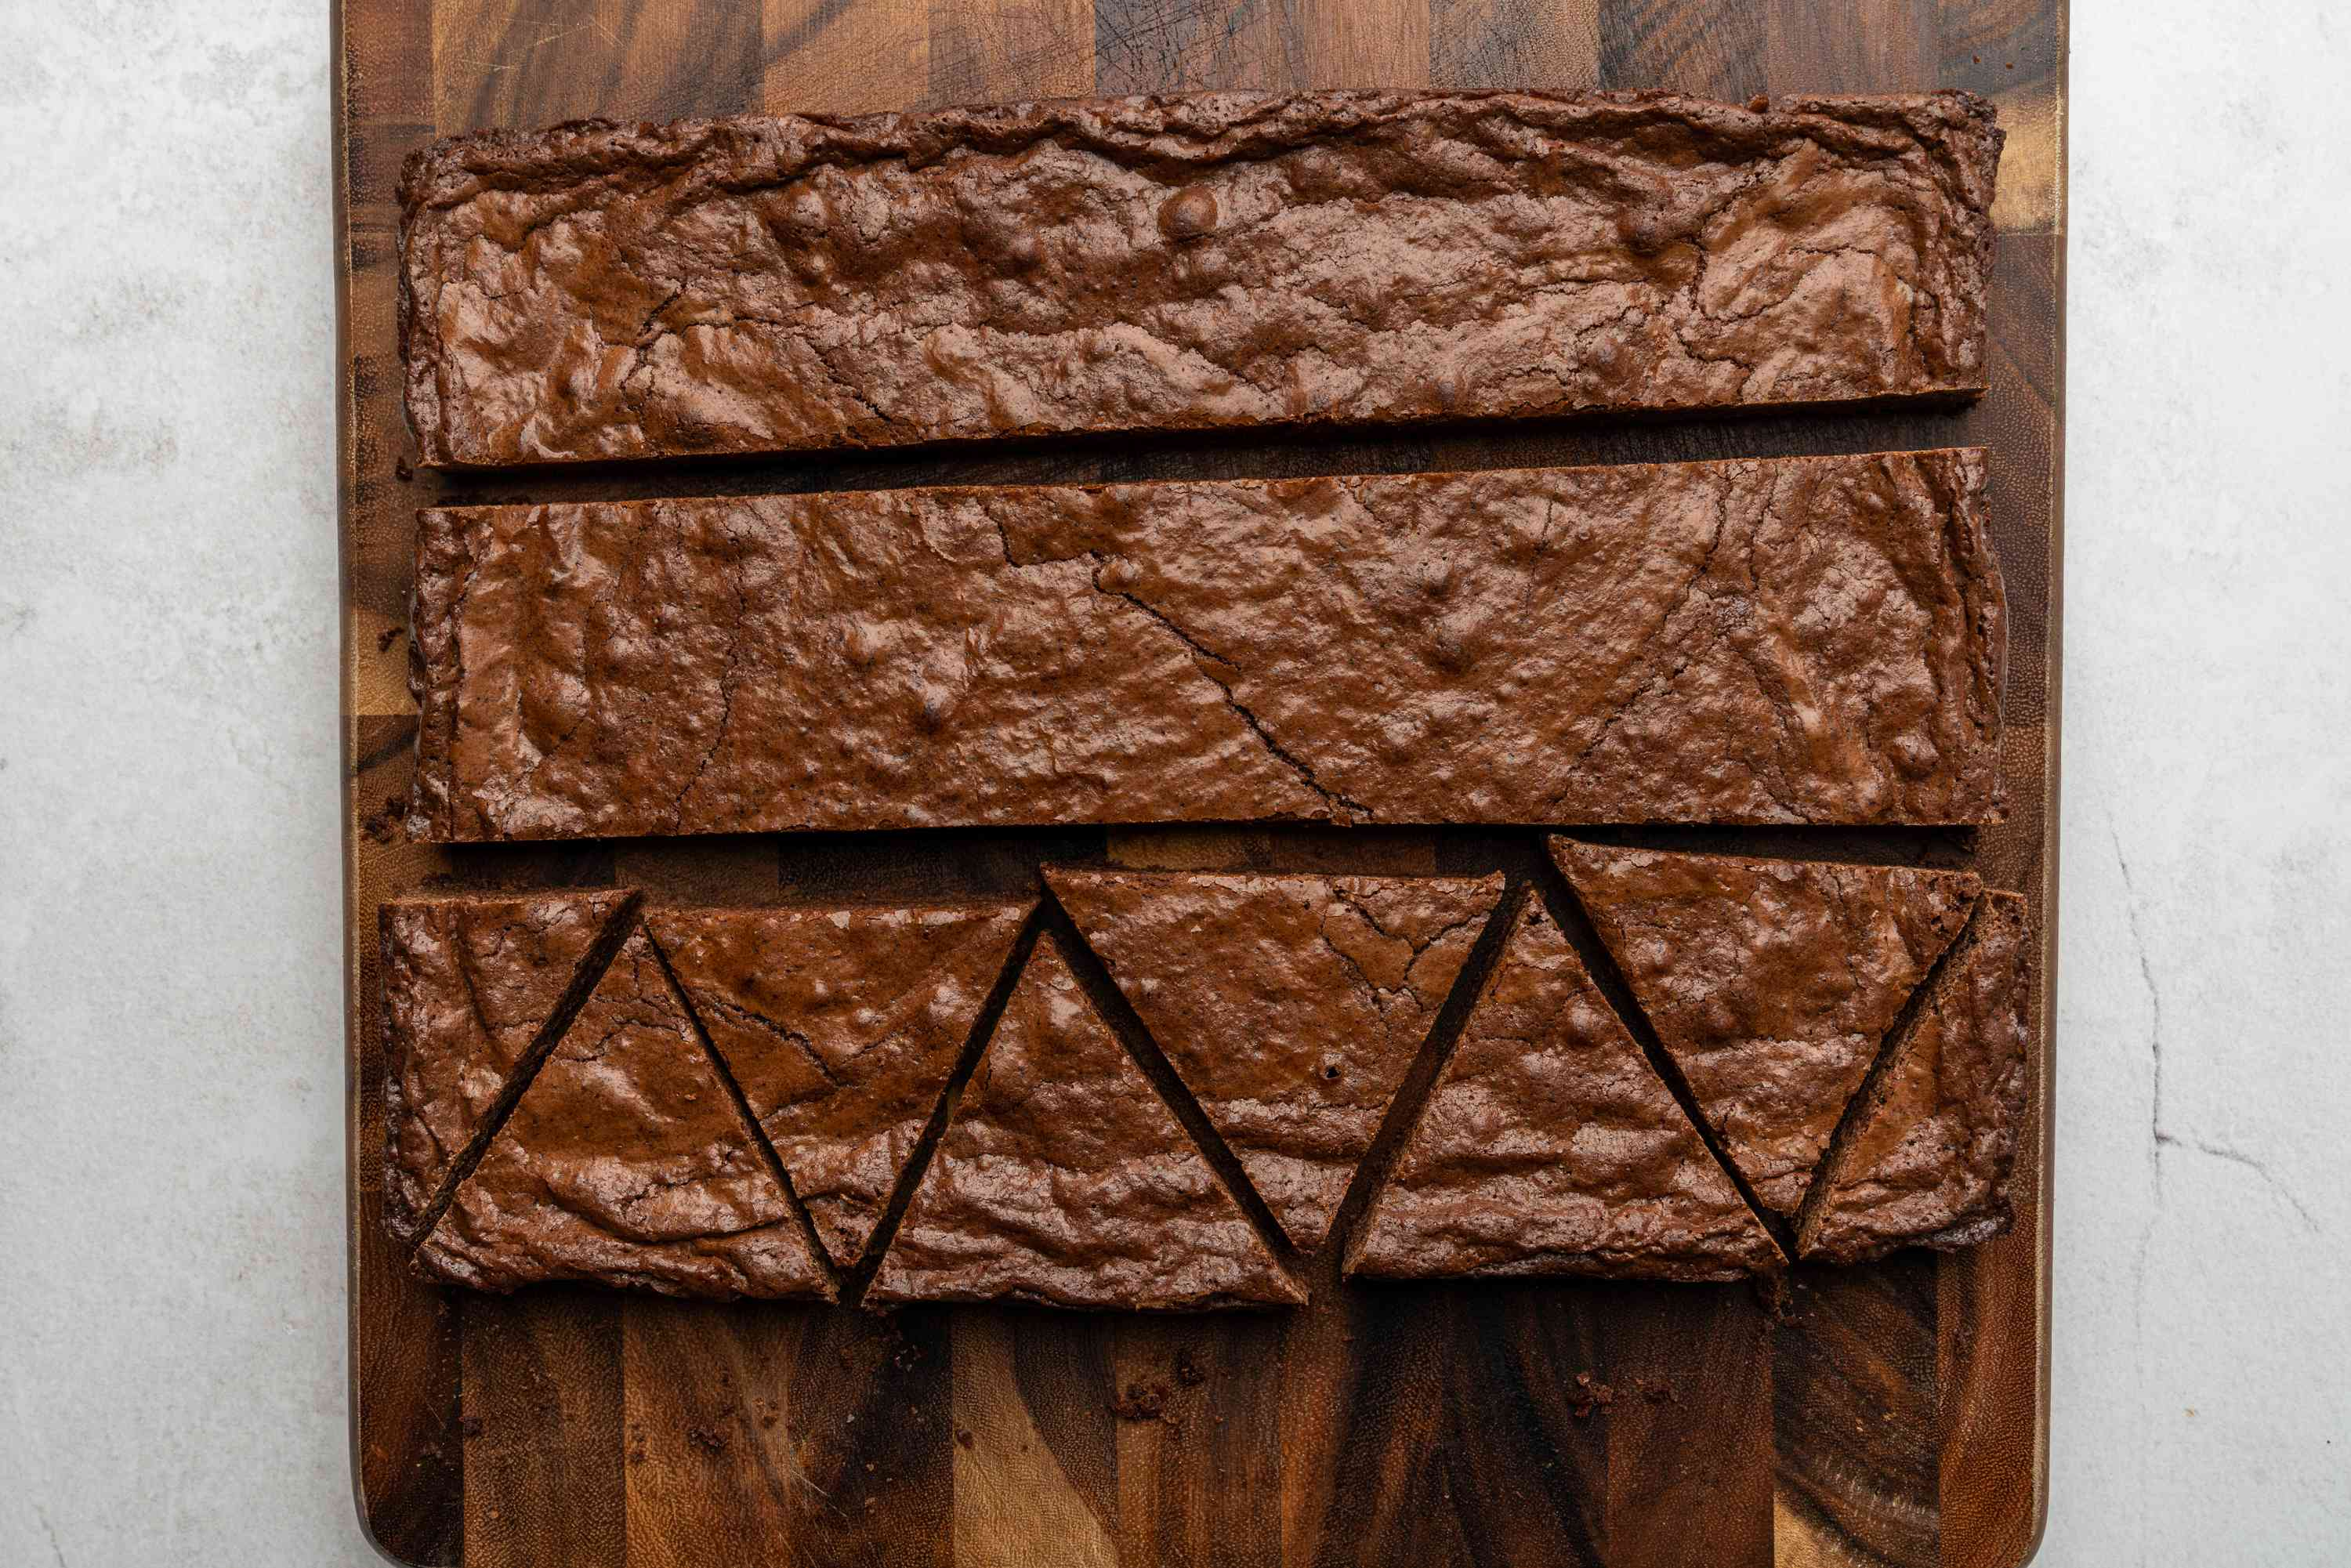 Cut brownies into tree shapes